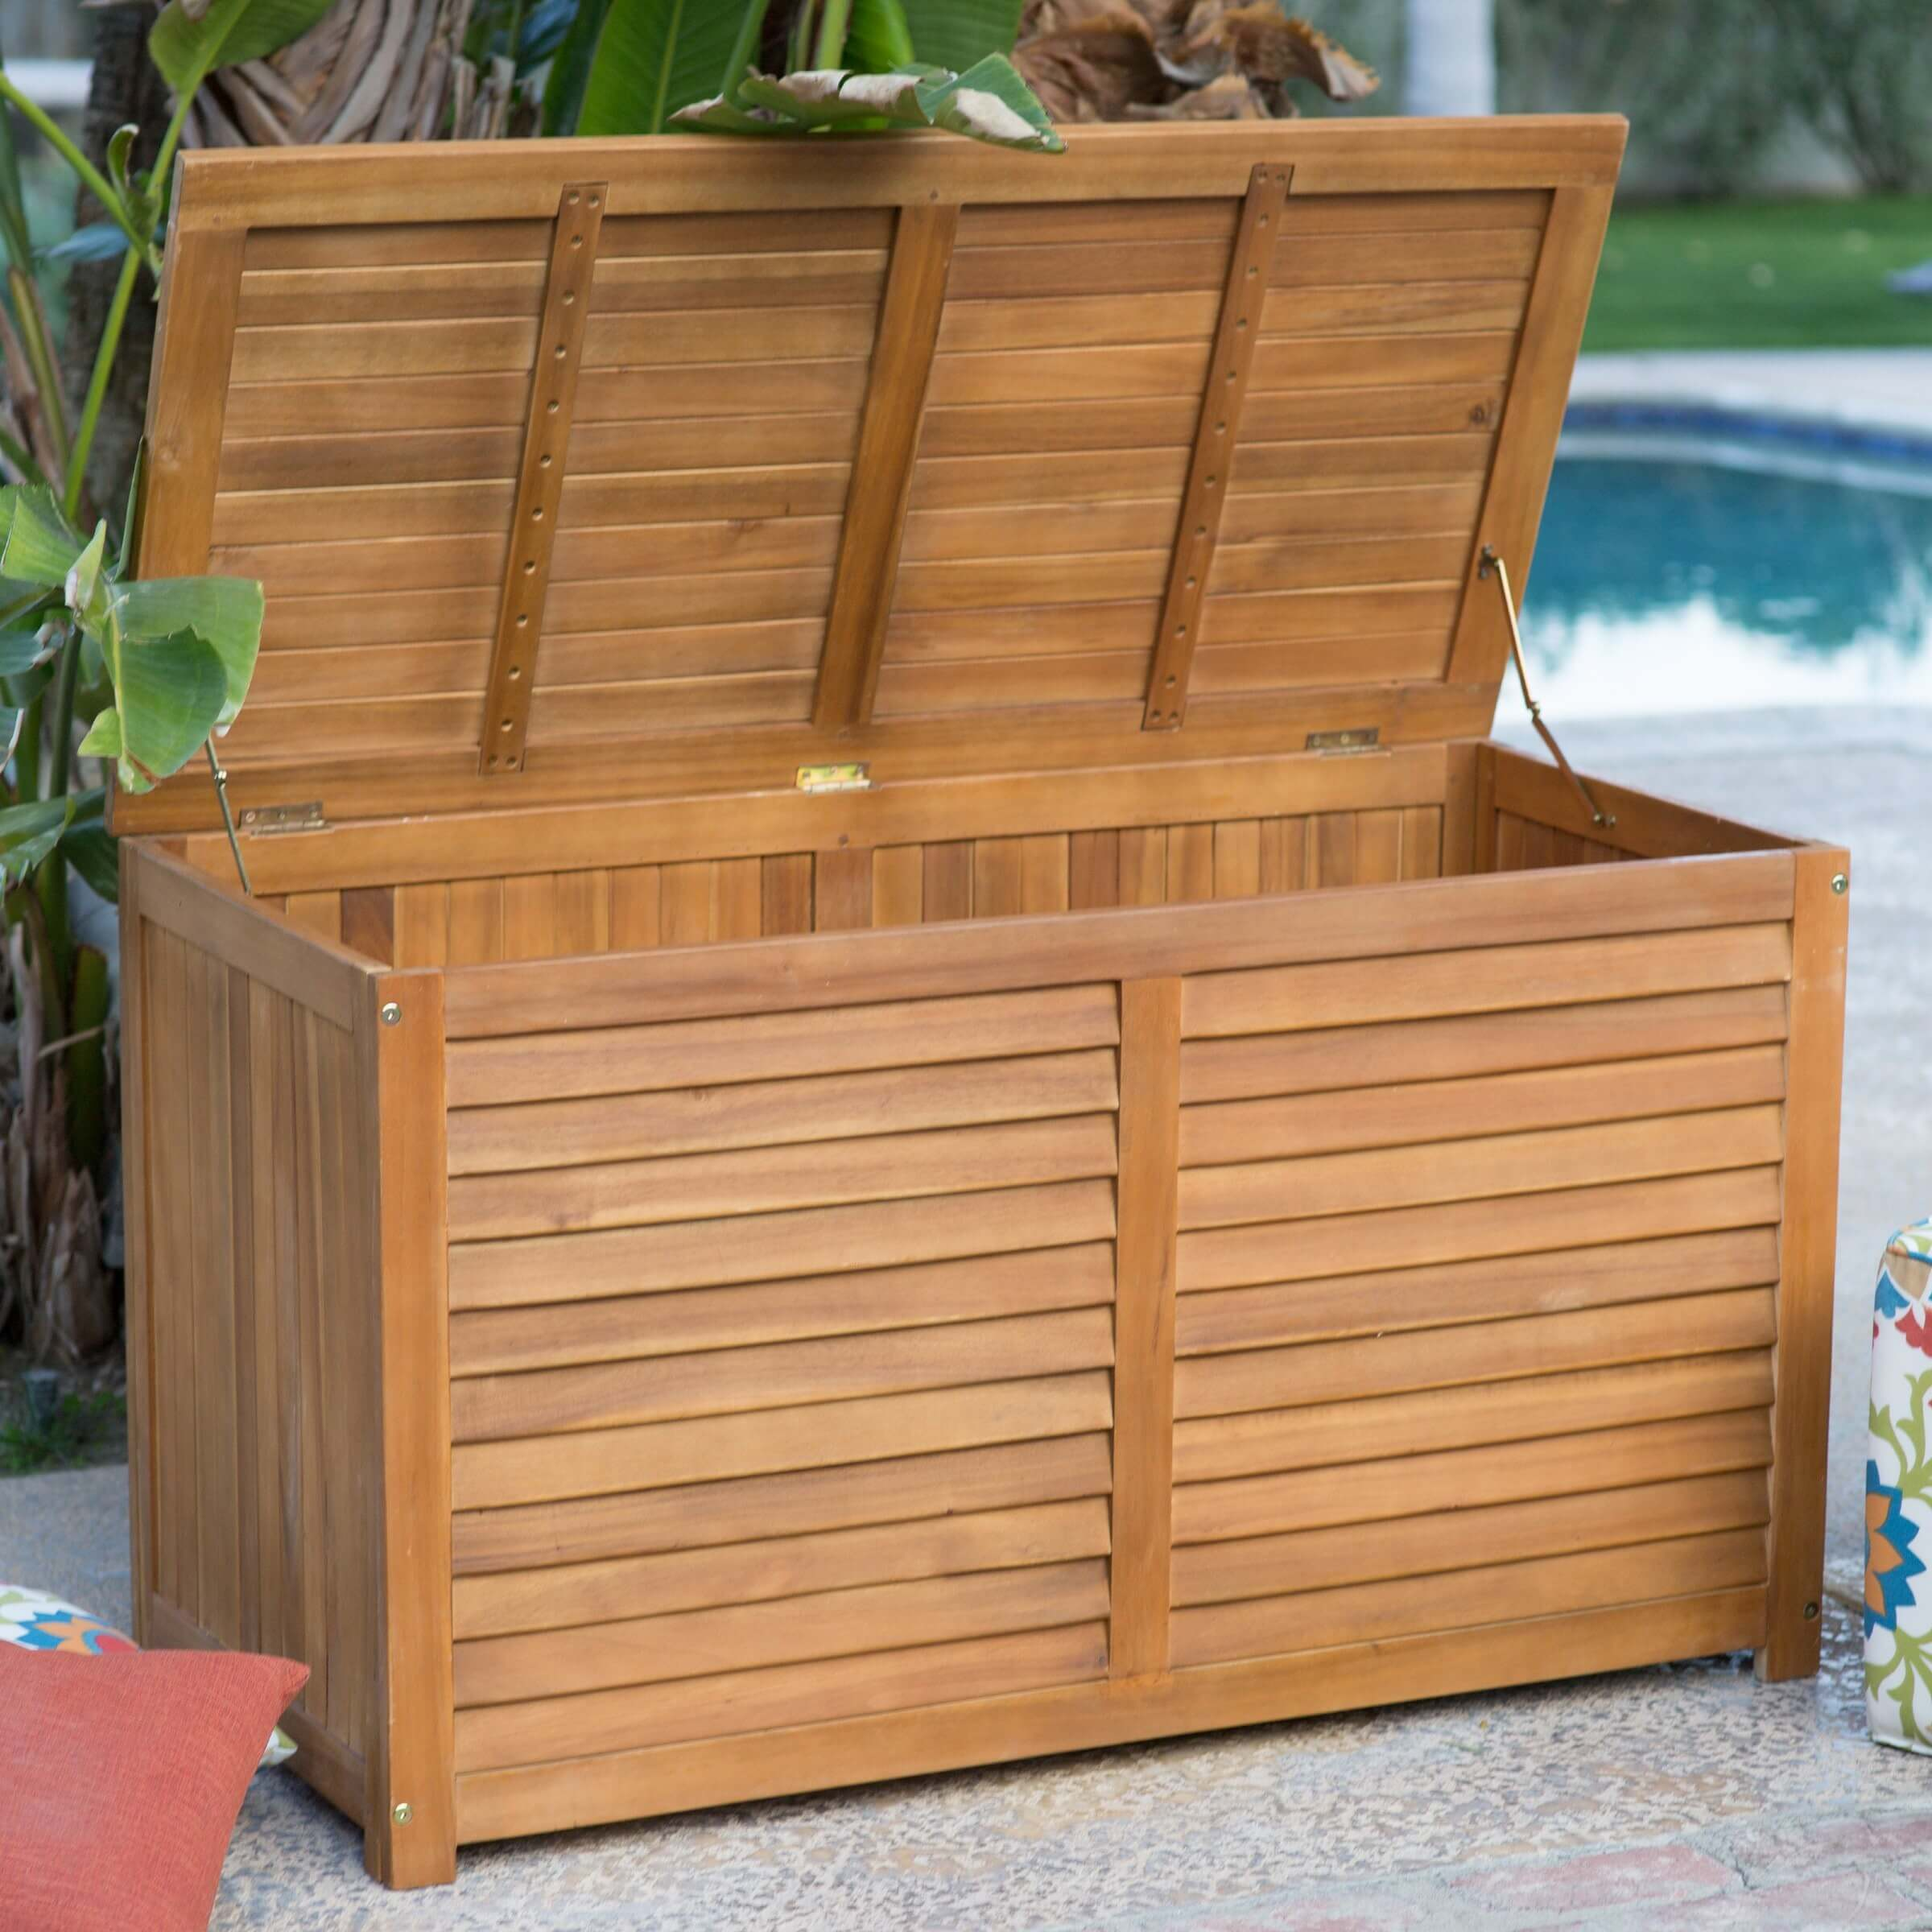 Designed with a slat construction for ventilation, this acacia wood storage box has a natural finish and lots of storage space.